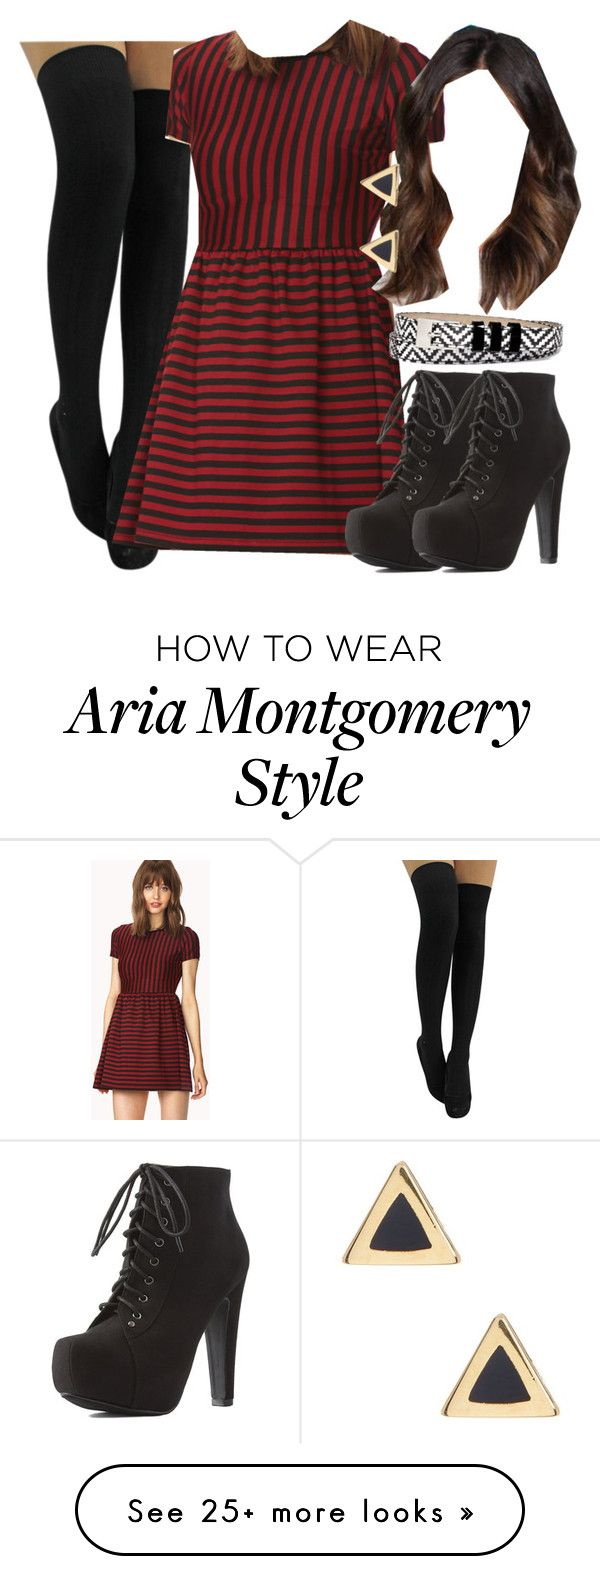 """Aria Montgomery inspired outfit with black over-the-knee socks"" by liarsstyle on Polyvore featuring Forever 21, Charlotte Russe, Liz Claiborne, Ariella Collection, party, Semi and mid"